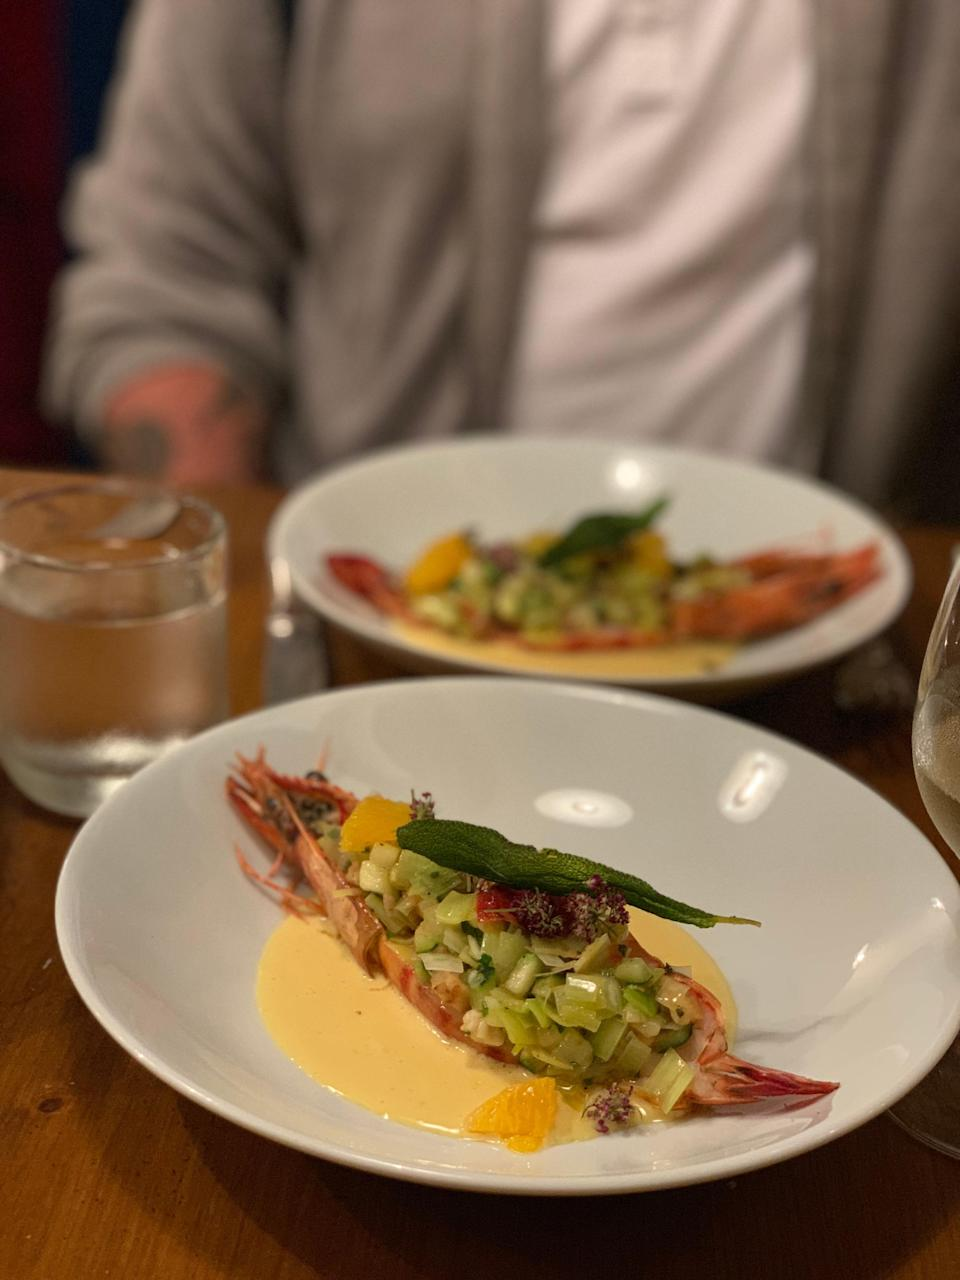 """<p><strong>What were your first impressions when you arrived?</strong> Arriving at this this blink-and-you-miss-it restaurant on a side street in the 10th arrondissement, you will likely ask: """"Wait, is this it?"""" But yes, it is. This super-small, quite narrow spot with an open kitchen, stone walls and mismatched wooden chairs is precisely the place you booked ages ago, and that you will be talking about for ages after. Single-bulb fixtures hang from the ceiling, and an industrial-looking shelving unit doubles as a bussing station and bar-cum-kitchen counter as storage for condiments. It's rustic, simple, and delightfully cool; like you're somewhere you <em>want</em> to be as opposed to somewhere you think you """"should"""" be.</p> <p><strong>What's the crowd like?</strong> This is a crowd of people who know a thing or two about food preparation, have adventurous palettes, and follow (or are friends with) chef Katsuaki Okiyama. On the night we went, we heard various languages spoken—from Japanese to French, English, and Dutch—and there were intimate couples, siblings, and groups of friends eager to tuck into the night's mystery menu.</p> <p><strong>What should we be drinking?</strong> This is, first and foremost, a restaurant. While the beverage menu has been carefully considered to pair nicely with rotating menu items—with a strong focus on natural wines, as well as a handful of sake options—you wouldn't come here just to drink. There was not even a specific drink list; rather, your server will offer suggestions based on that evening's menu and your thirst level.</p> <p><strong>Main event: the food. Give us the lowdown—especially what not to miss.</strong> This is a tasting-menu-only restaurant. No a la carte options; and, in fact, their website clearly states that it may not work for those with certain allergies, intolerances or other dietary restrictions. Chef Katsuaki Okiyama makes what he plans, and you either are going to eat it (and, I promise you, love it) or you w"""